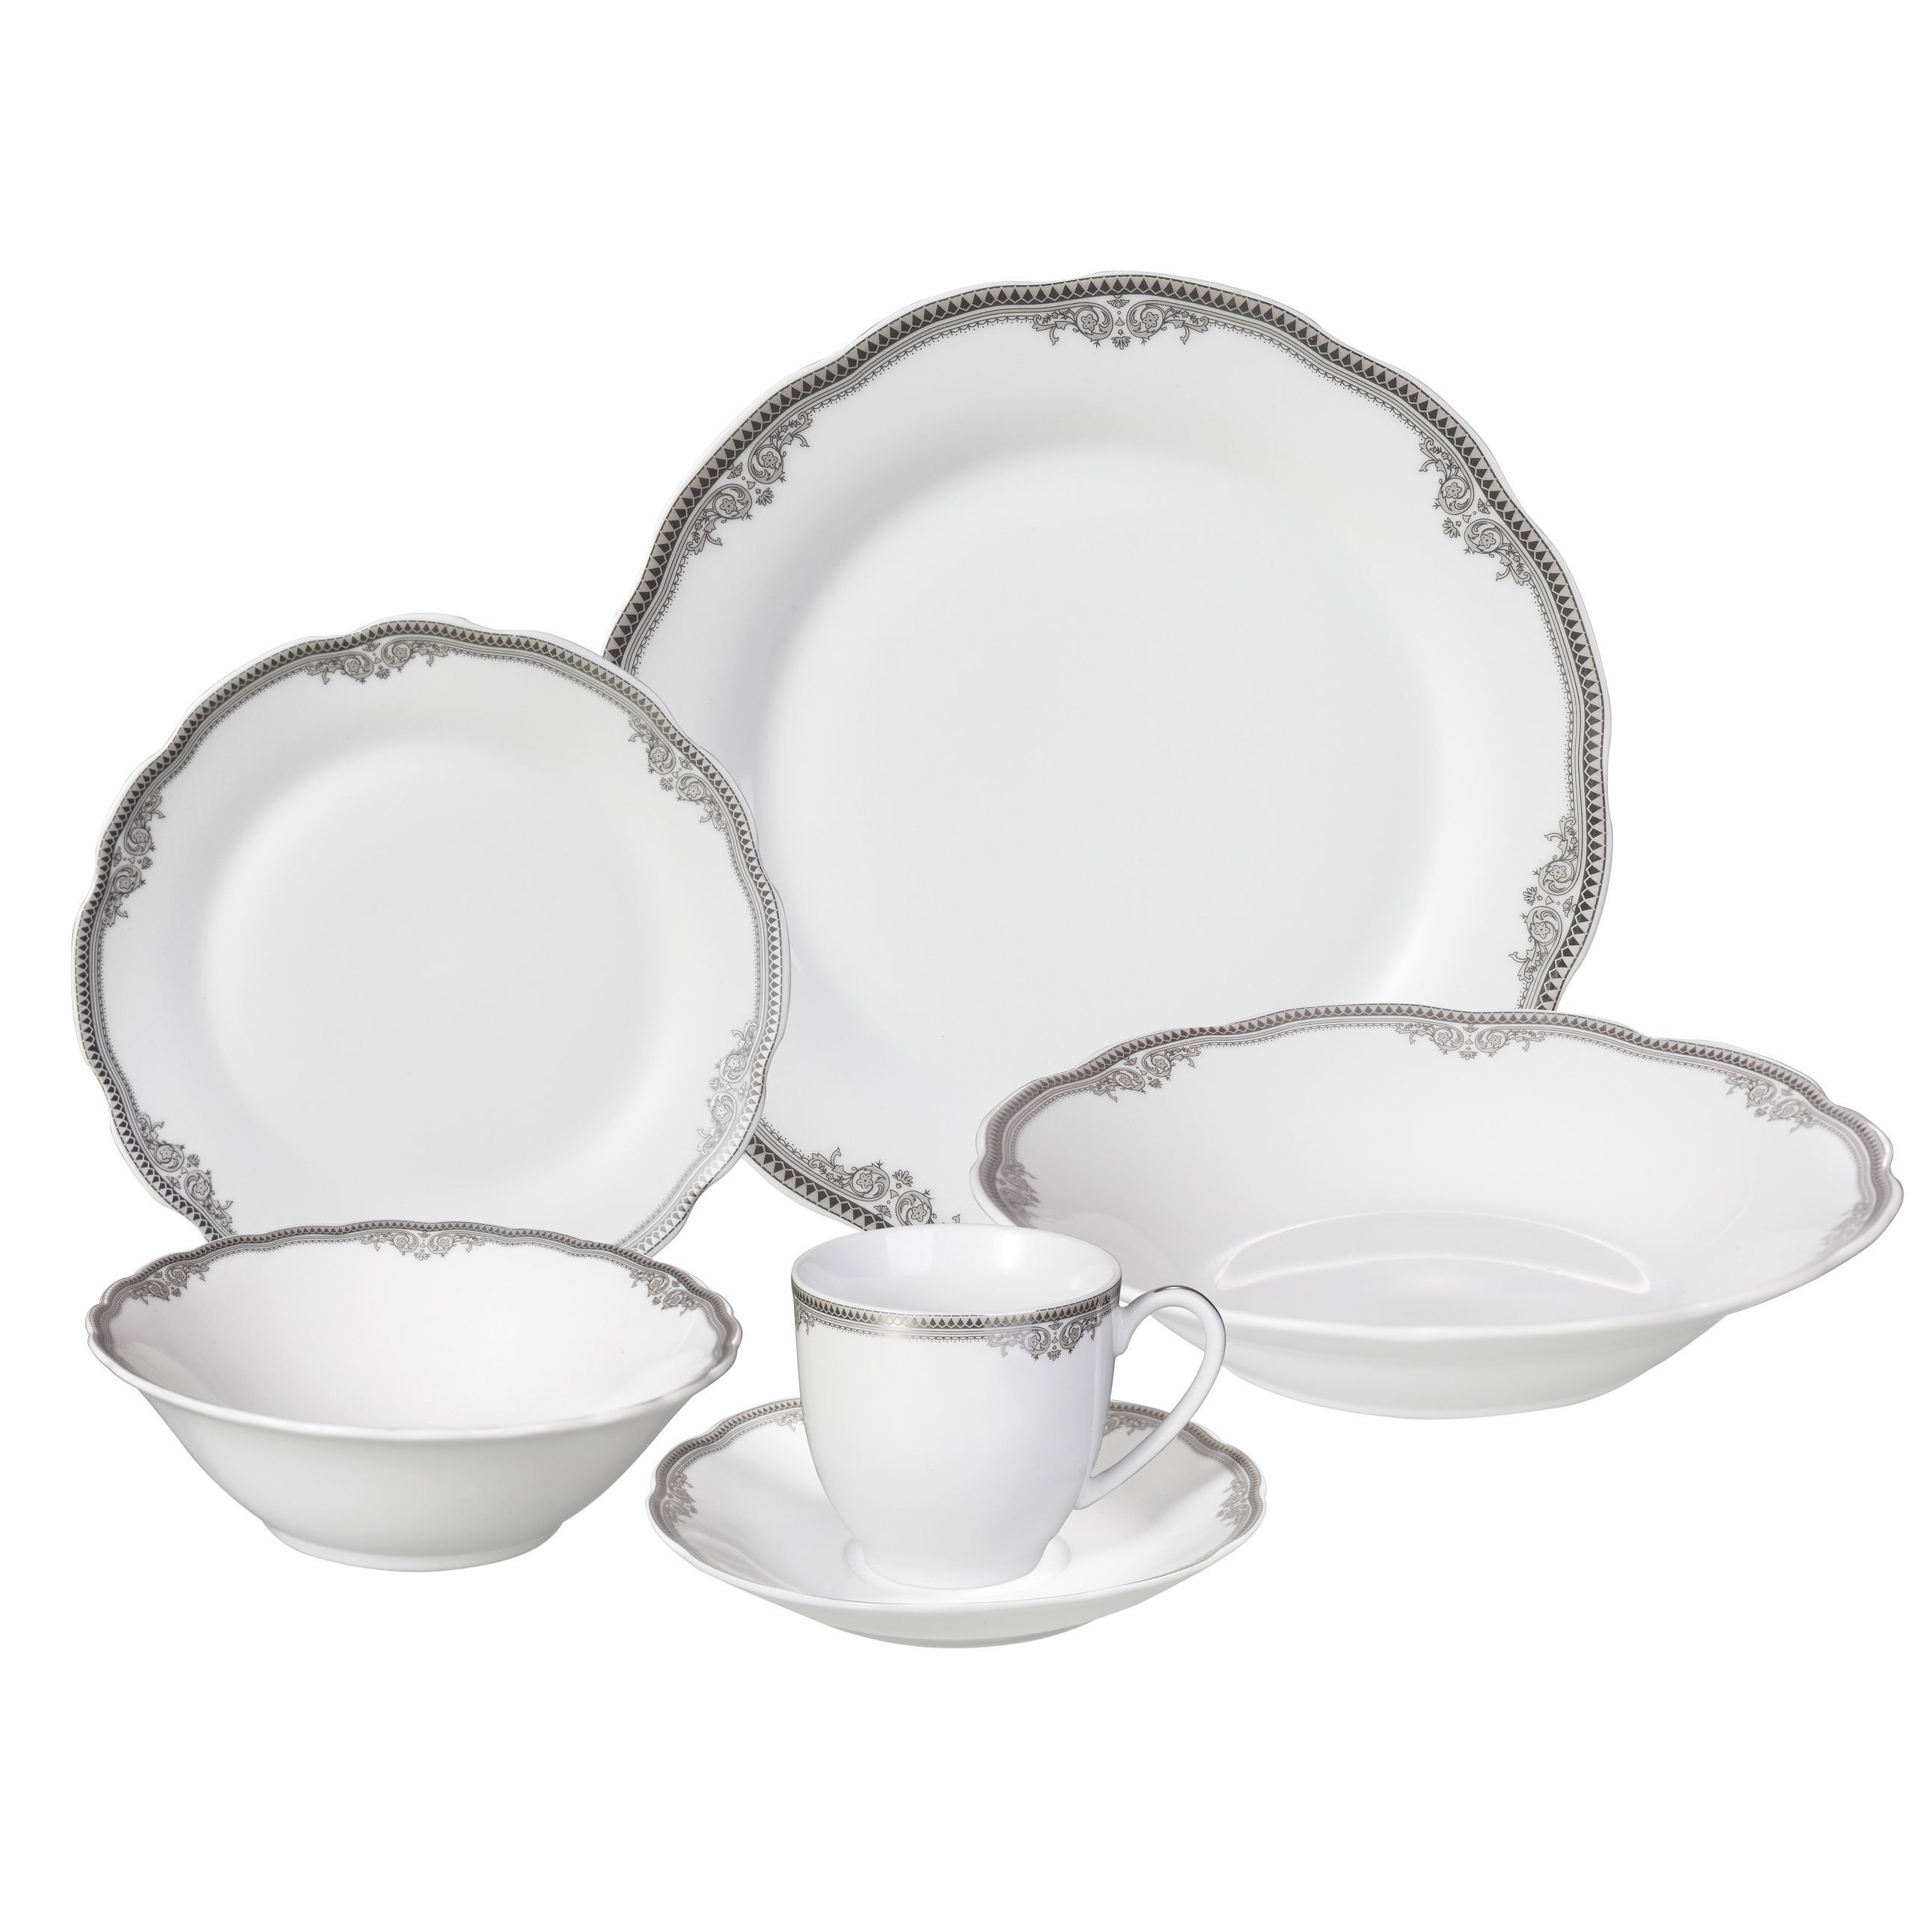 This elegant and stylish dinnerware set with silver wavy edging creates an elegant look while allowing  sc 1 st  Pinterest & This elegant and stylish dinnerware set with silver wavy edging ...